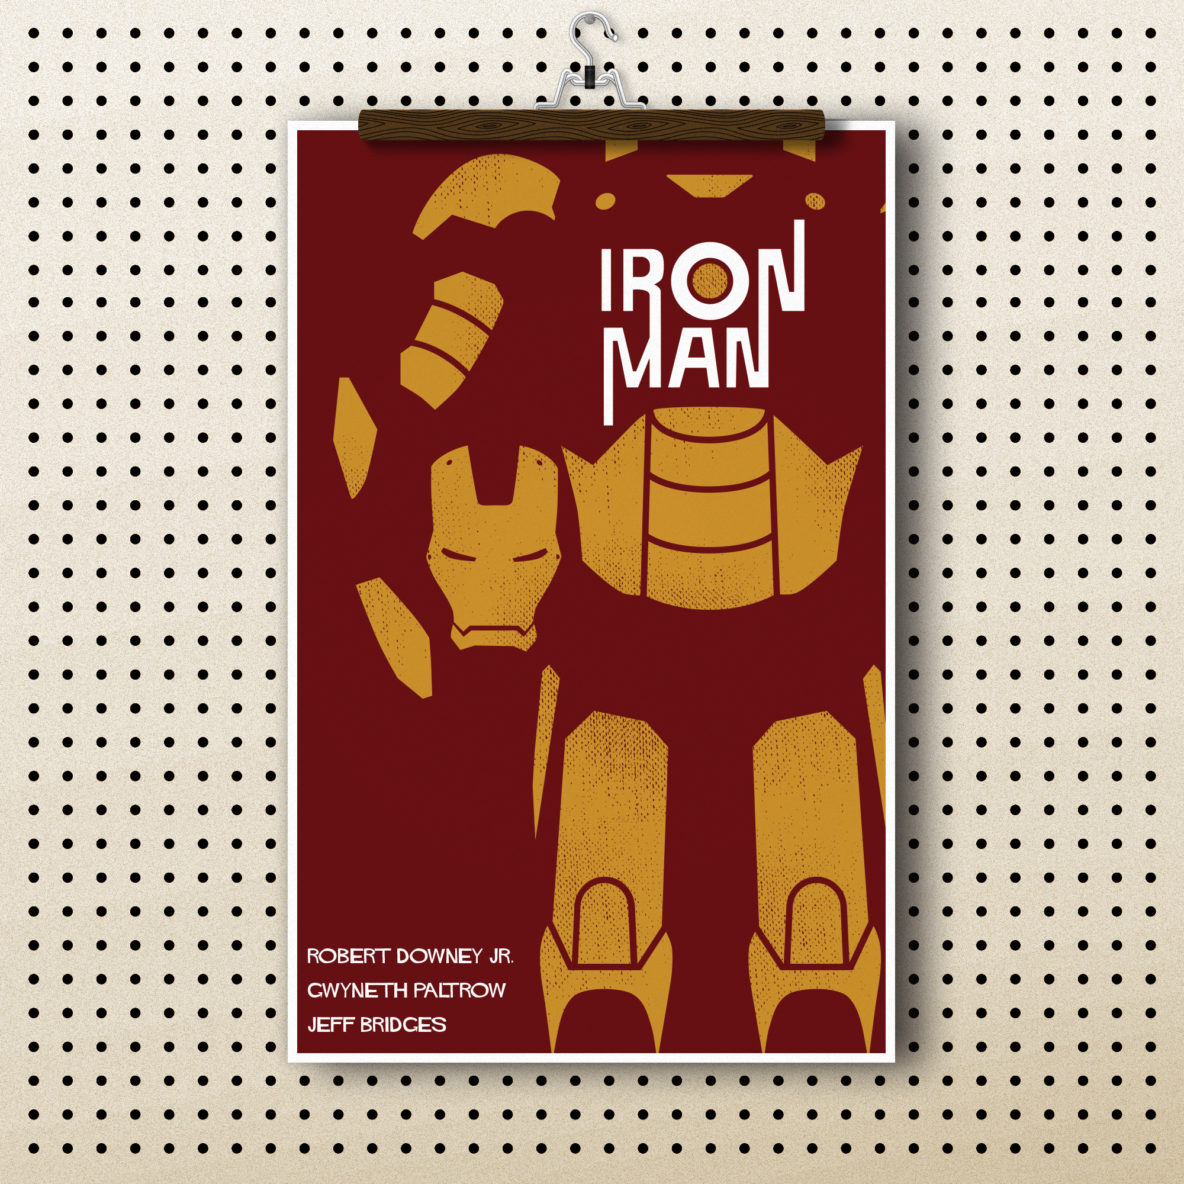 Iron Man Poster, inspired by Saul Bass